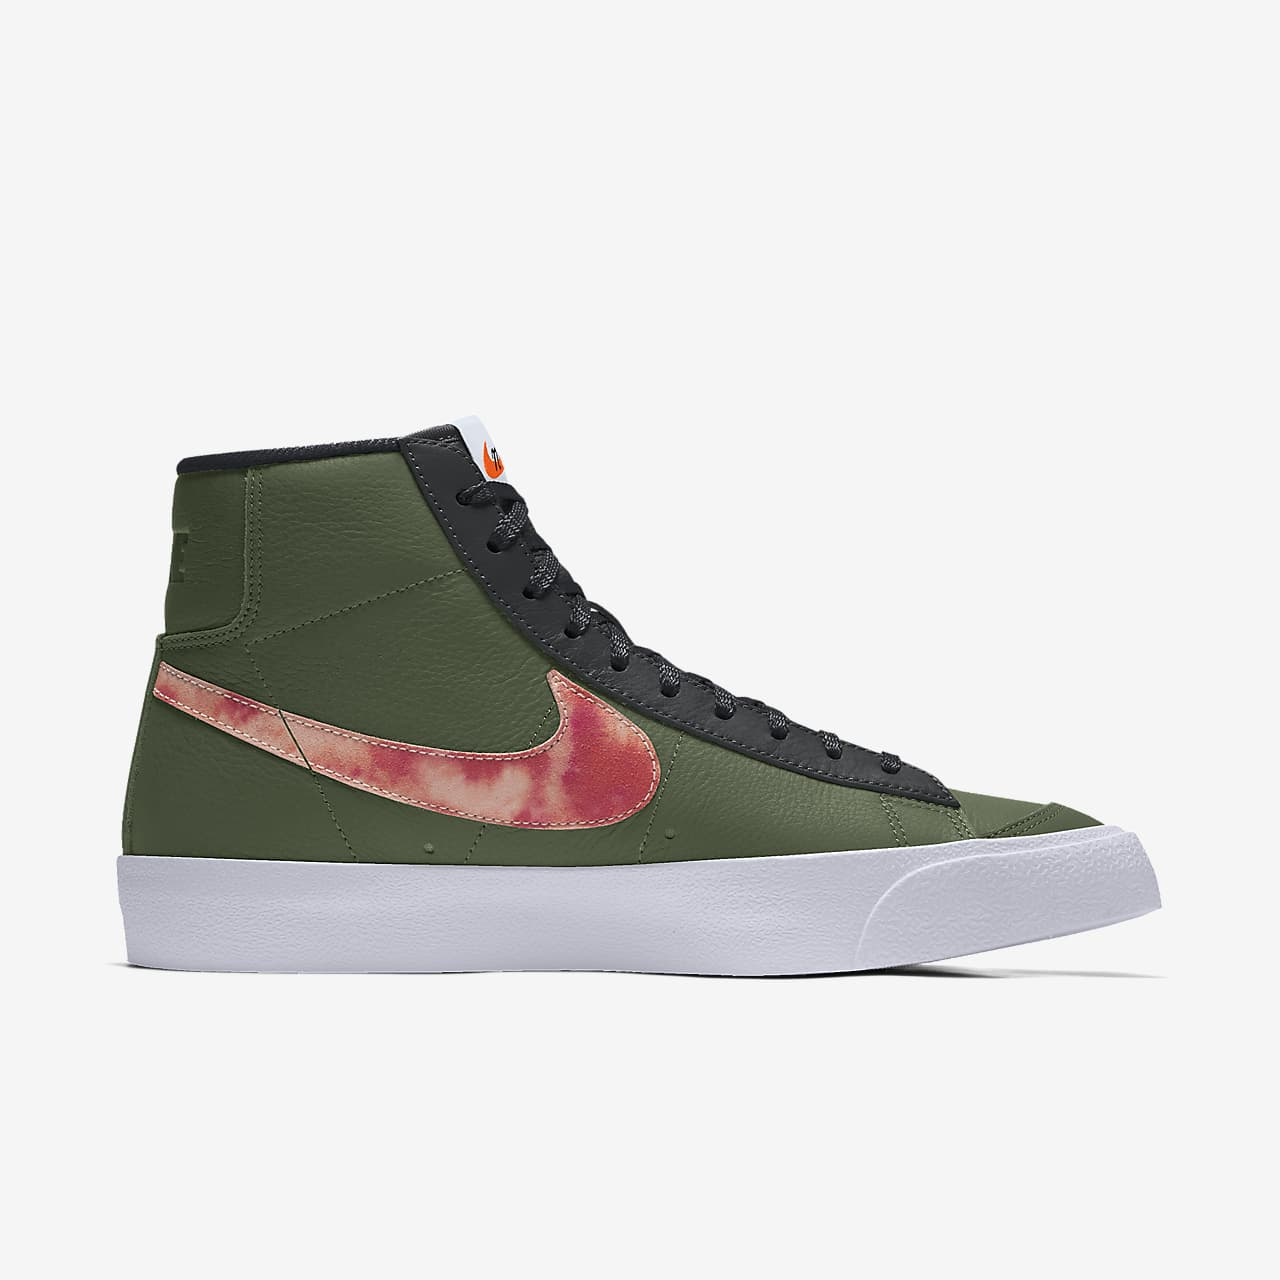 Chaussure personnalisable Nike Blazer Mid '77 By You